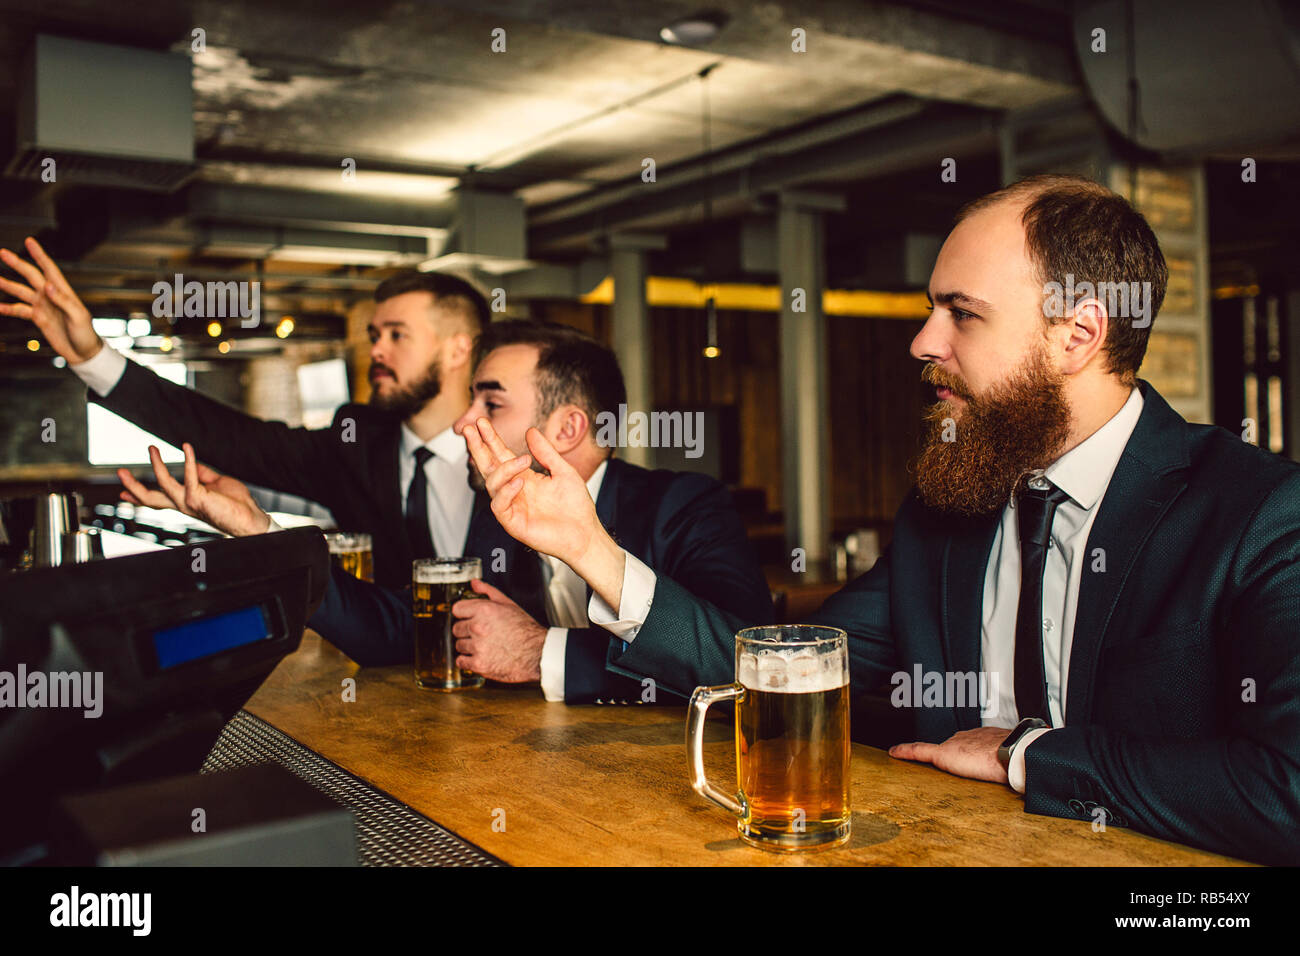 Young men in suits sit in bar and cheer. They watch TV. Guys are emotional. They wave and reach hands forward. - Stock Image